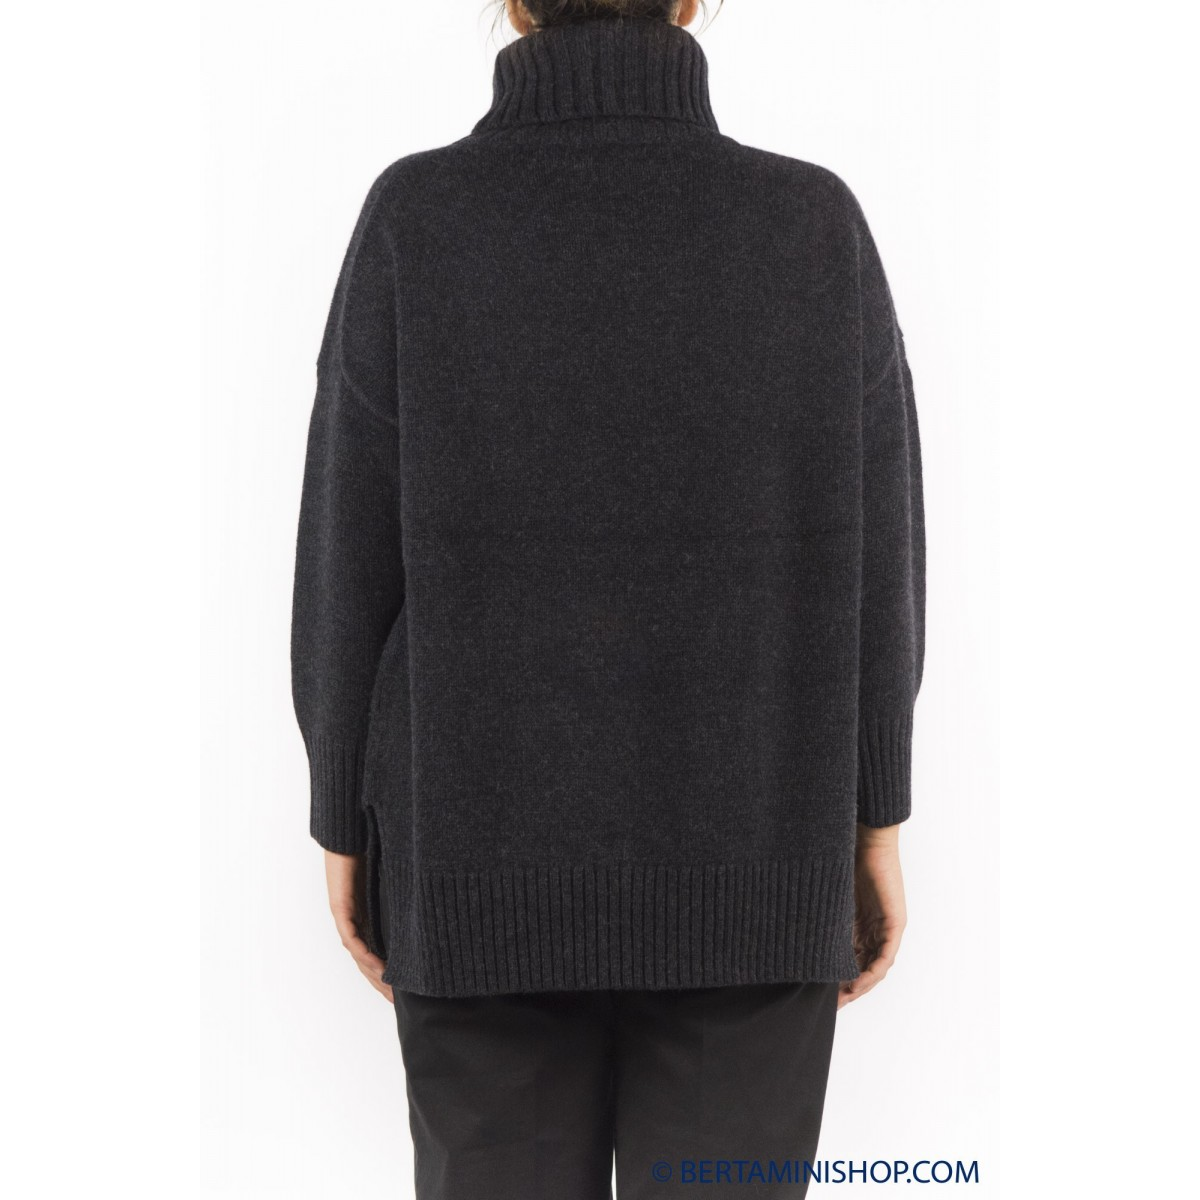 Jumper Ralph Lauren Woman - V39Id318Wd236 BBD15 - Antracite